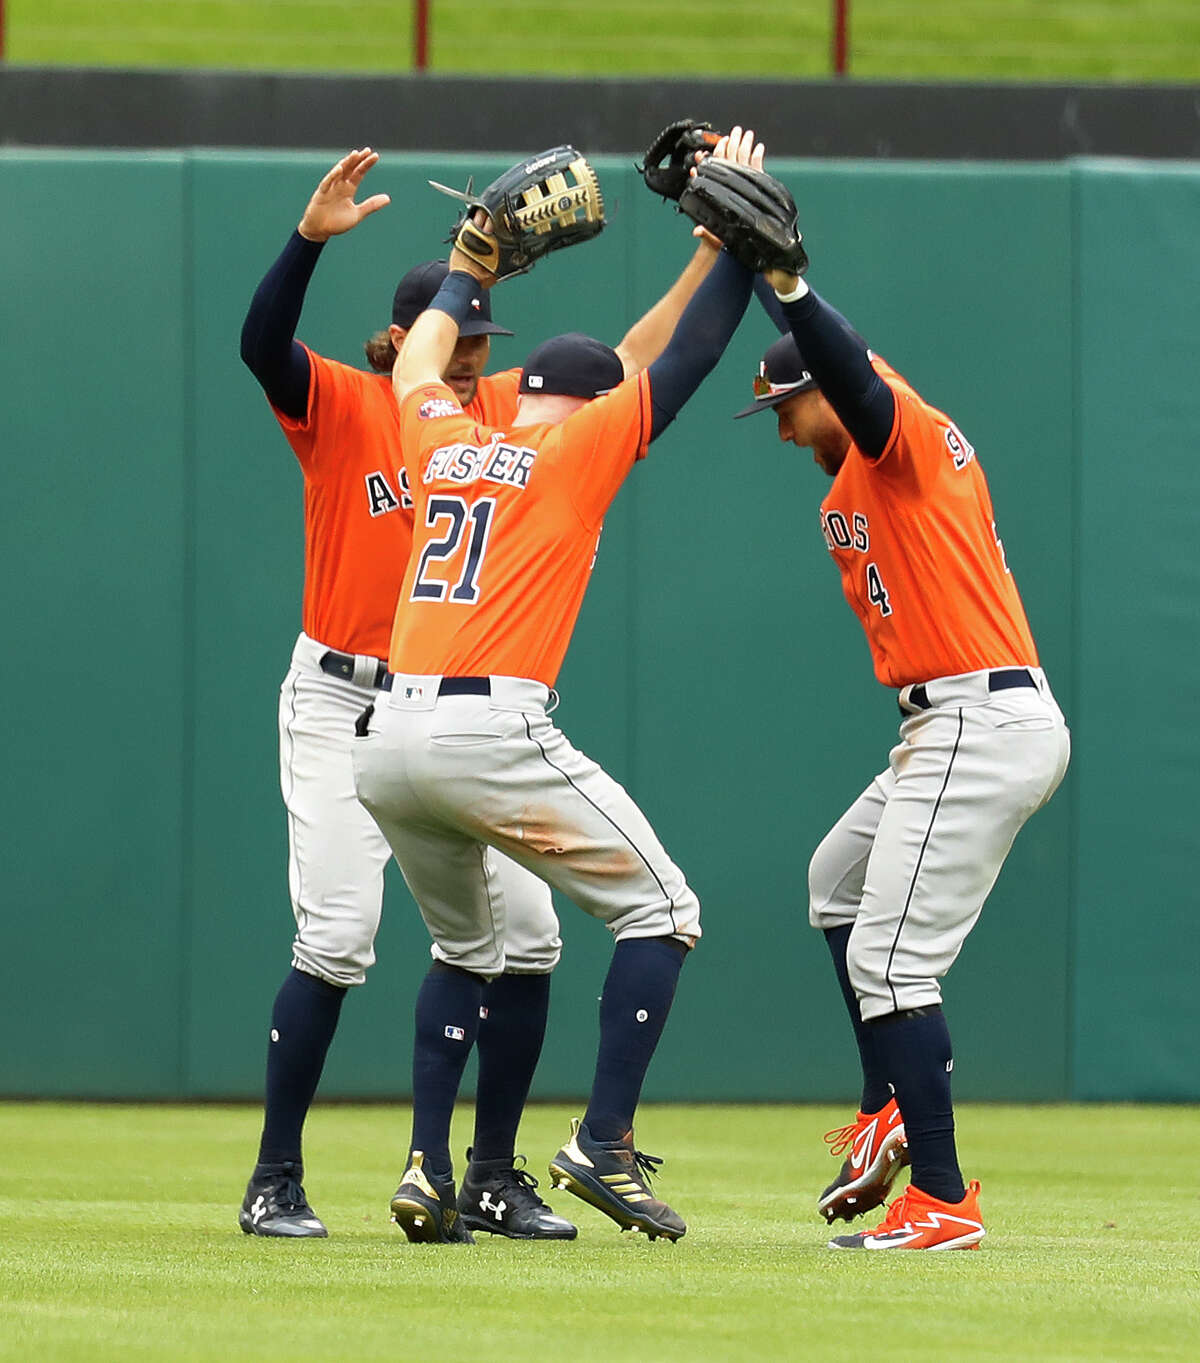 Houston Astros George Springer (4), Derek Fisher (21), and Jake Marisnick (6) celebrate their 8-2 win over the Texas Rangers after an MLB baseball game at Globe Life Park, Sunday, April 1, 2018, in Arlington.